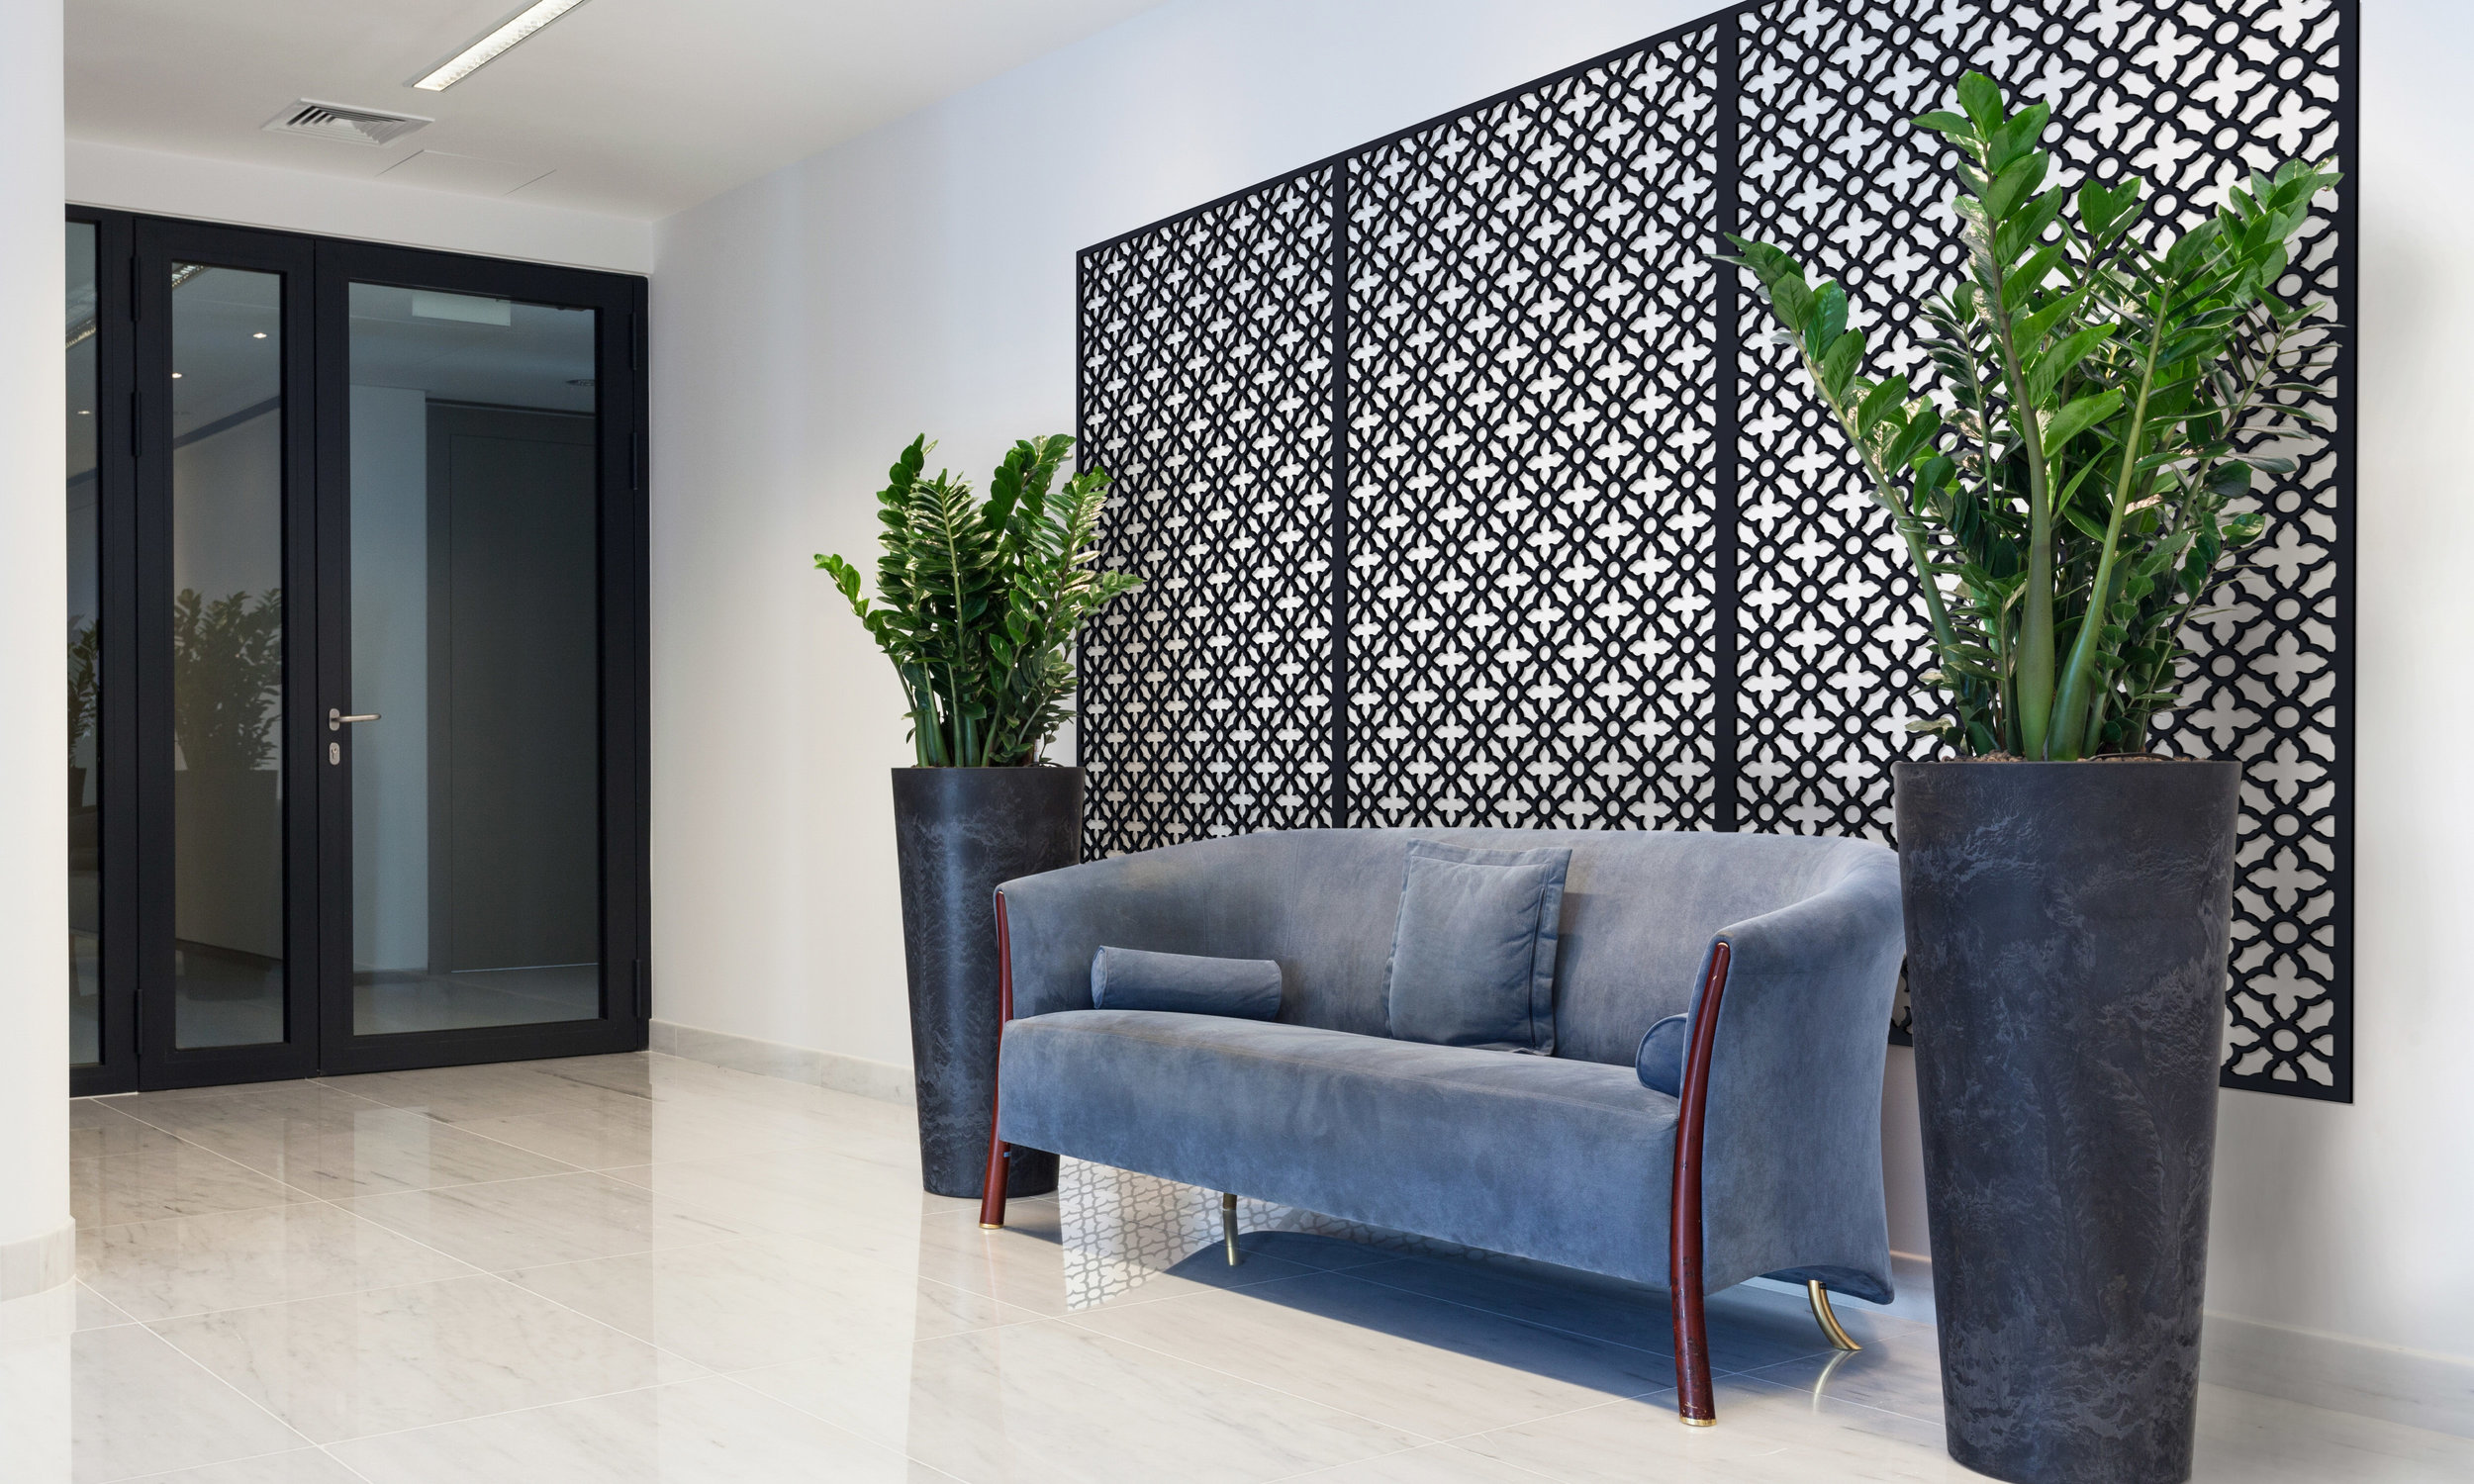 Installation Rendering B   Swift Grille decorative office wall panel - painted